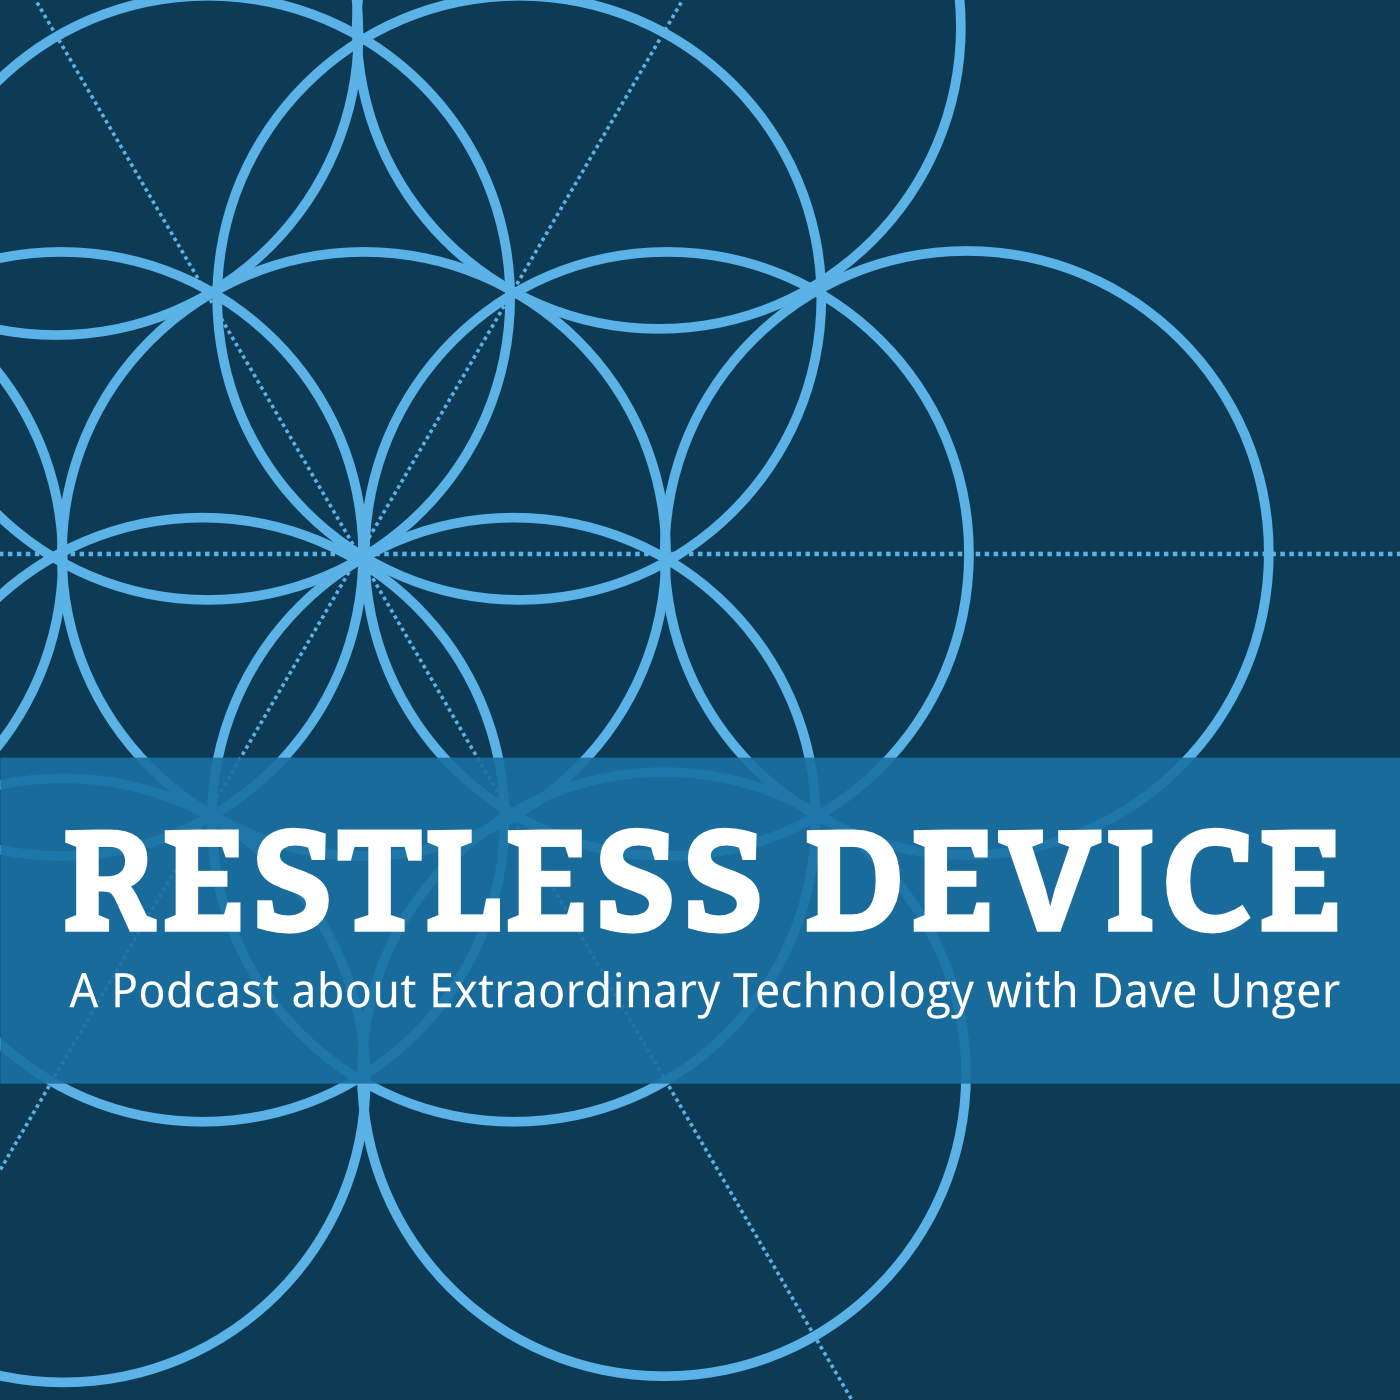 Restless Device